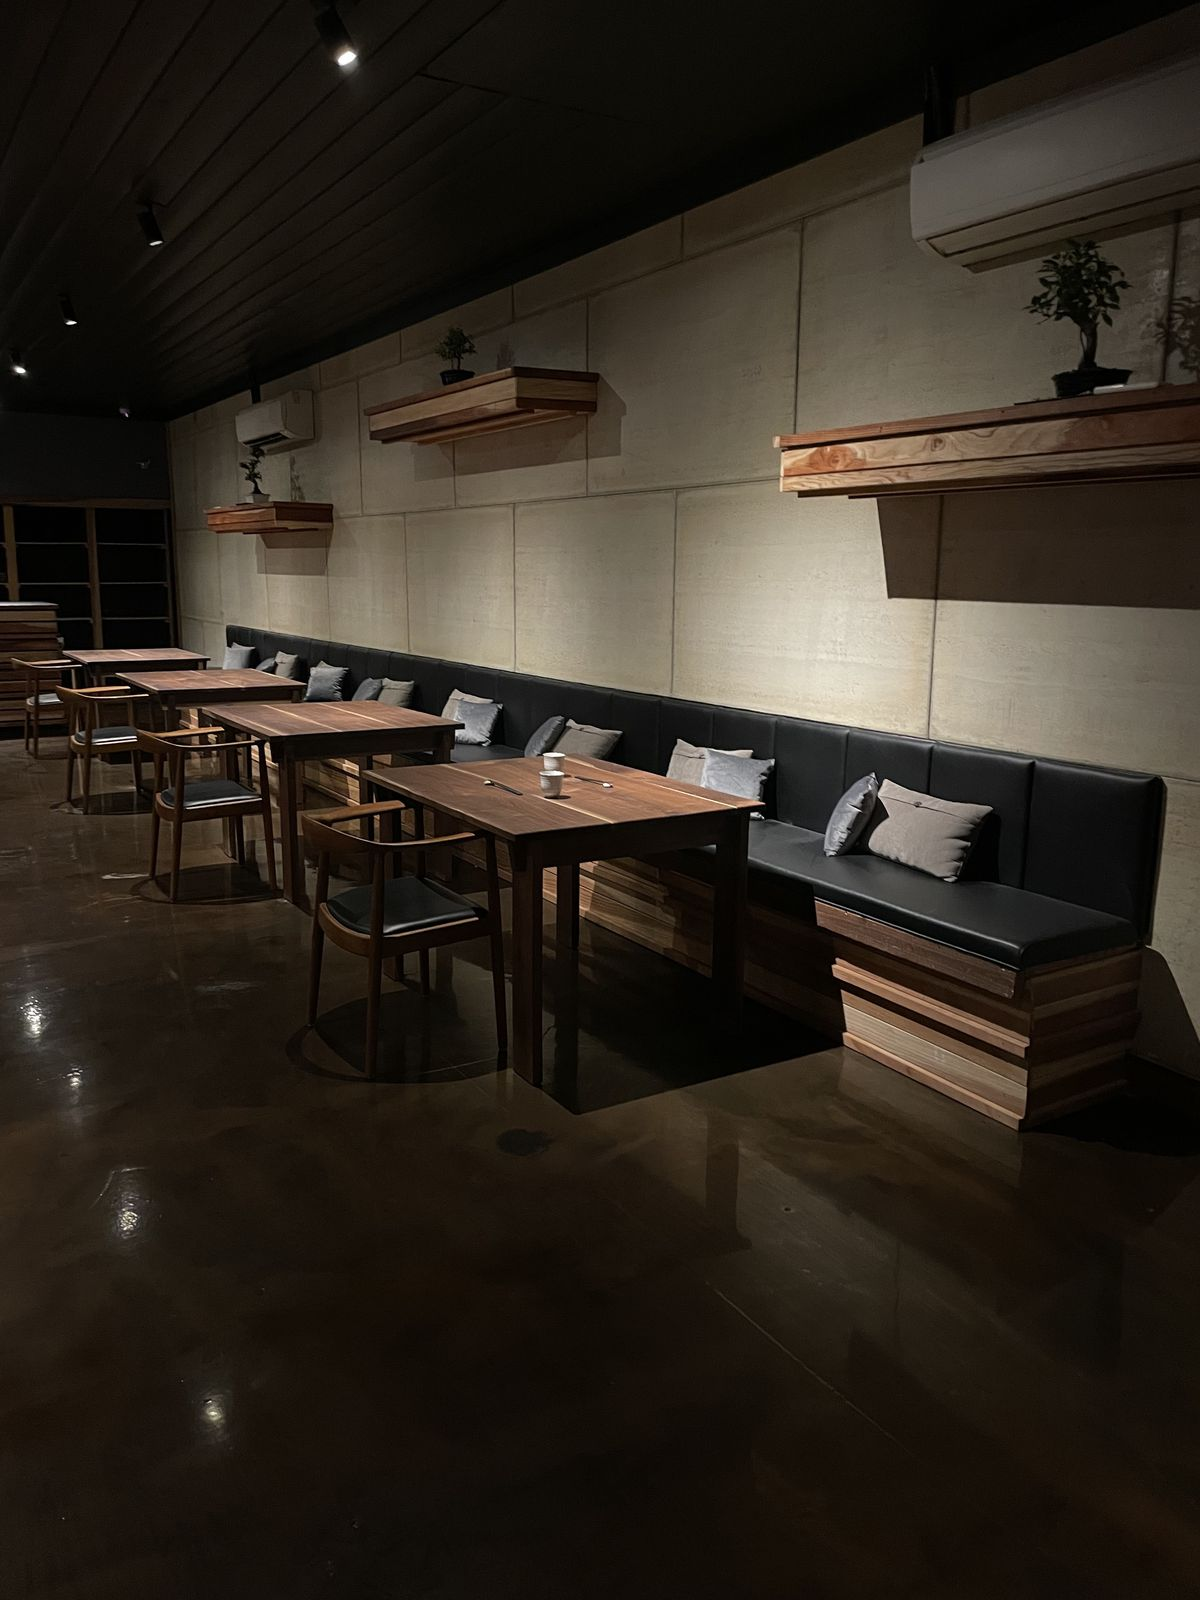 A banquette along the wall with four tables and chairs. On the wall are three shelves with bonsai trees.